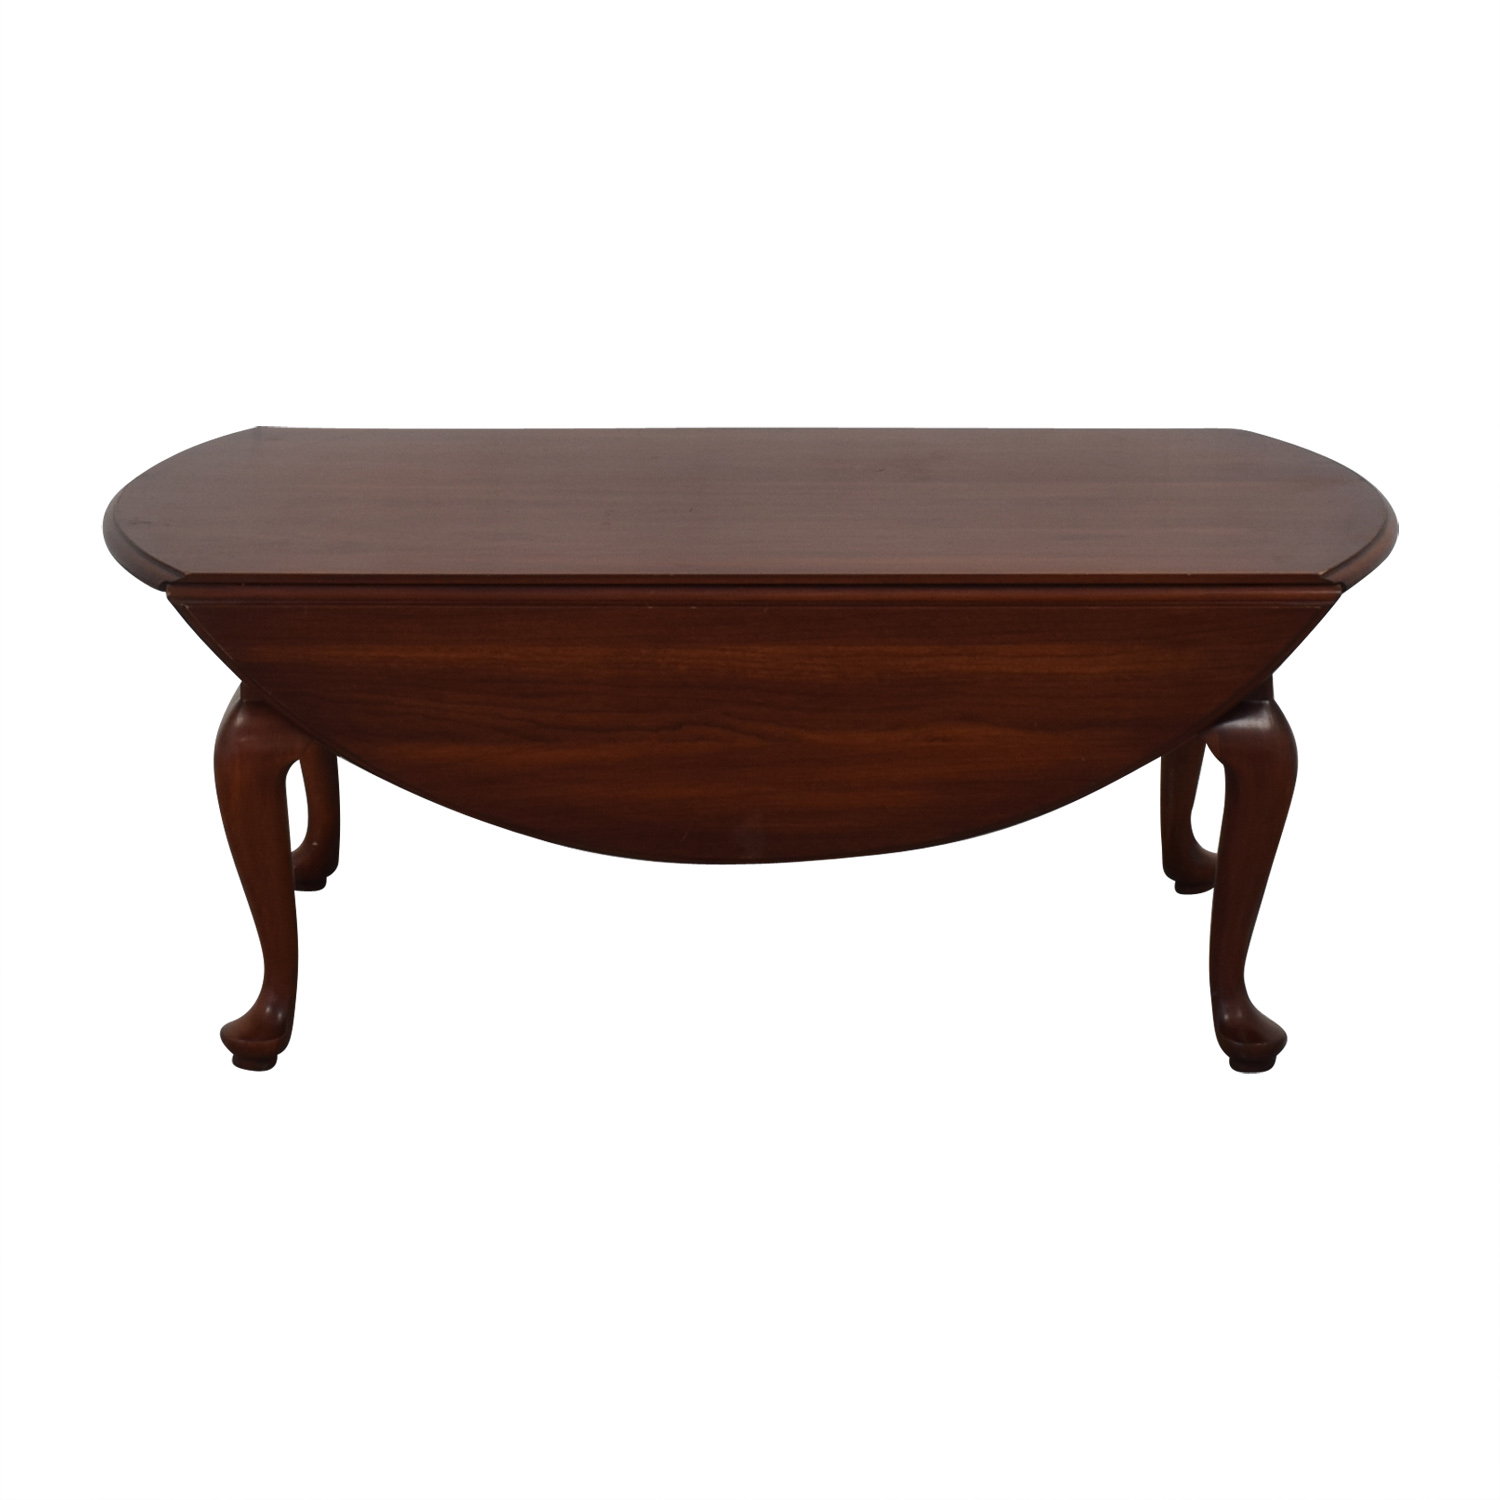 Henkel Harris Henkel Harris Drop-Leaf Queen Anne Coffee Table price